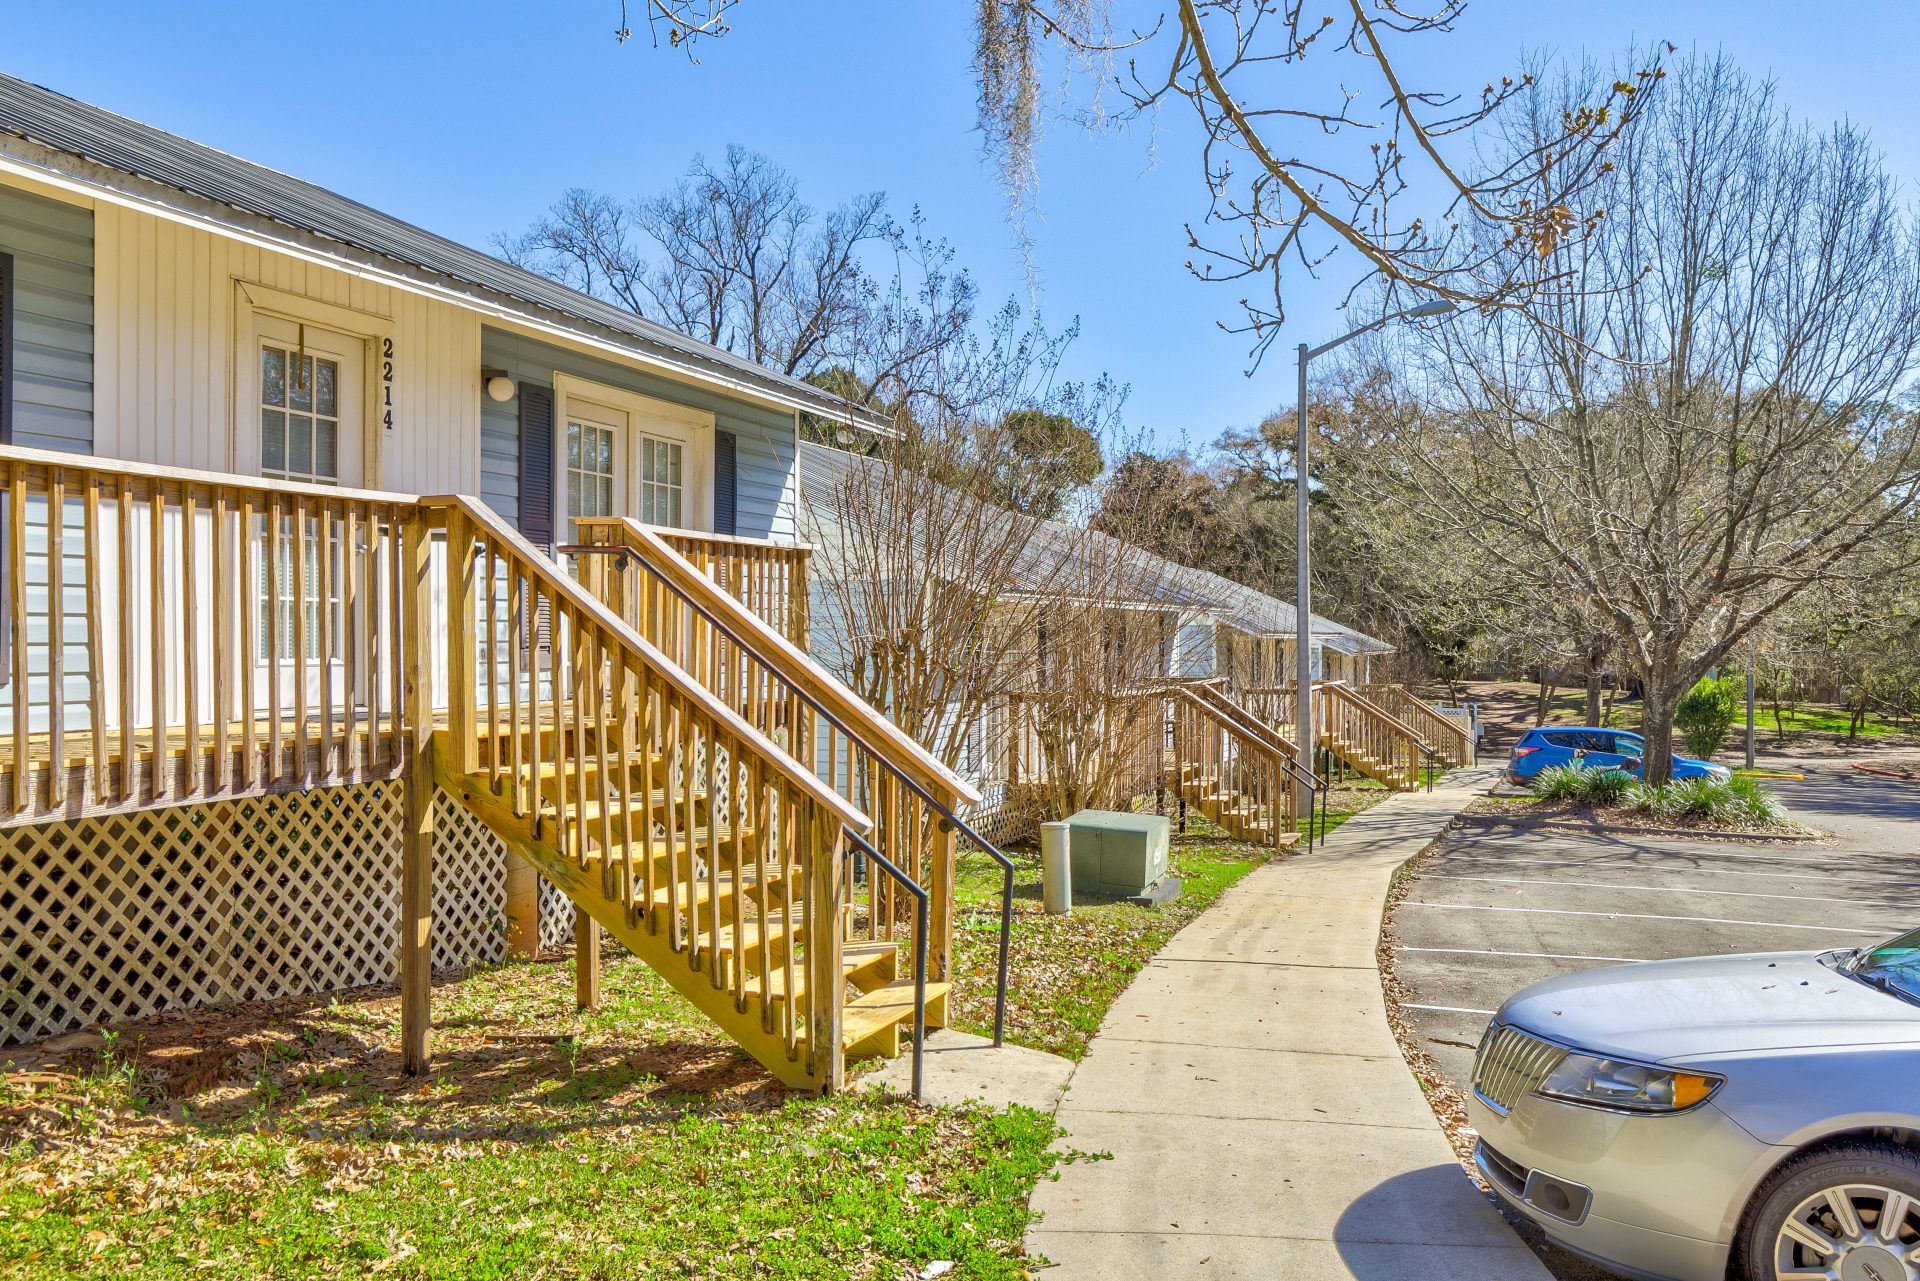 The_Cottages_at_Magnolia-FINAL-FULL_RES-14